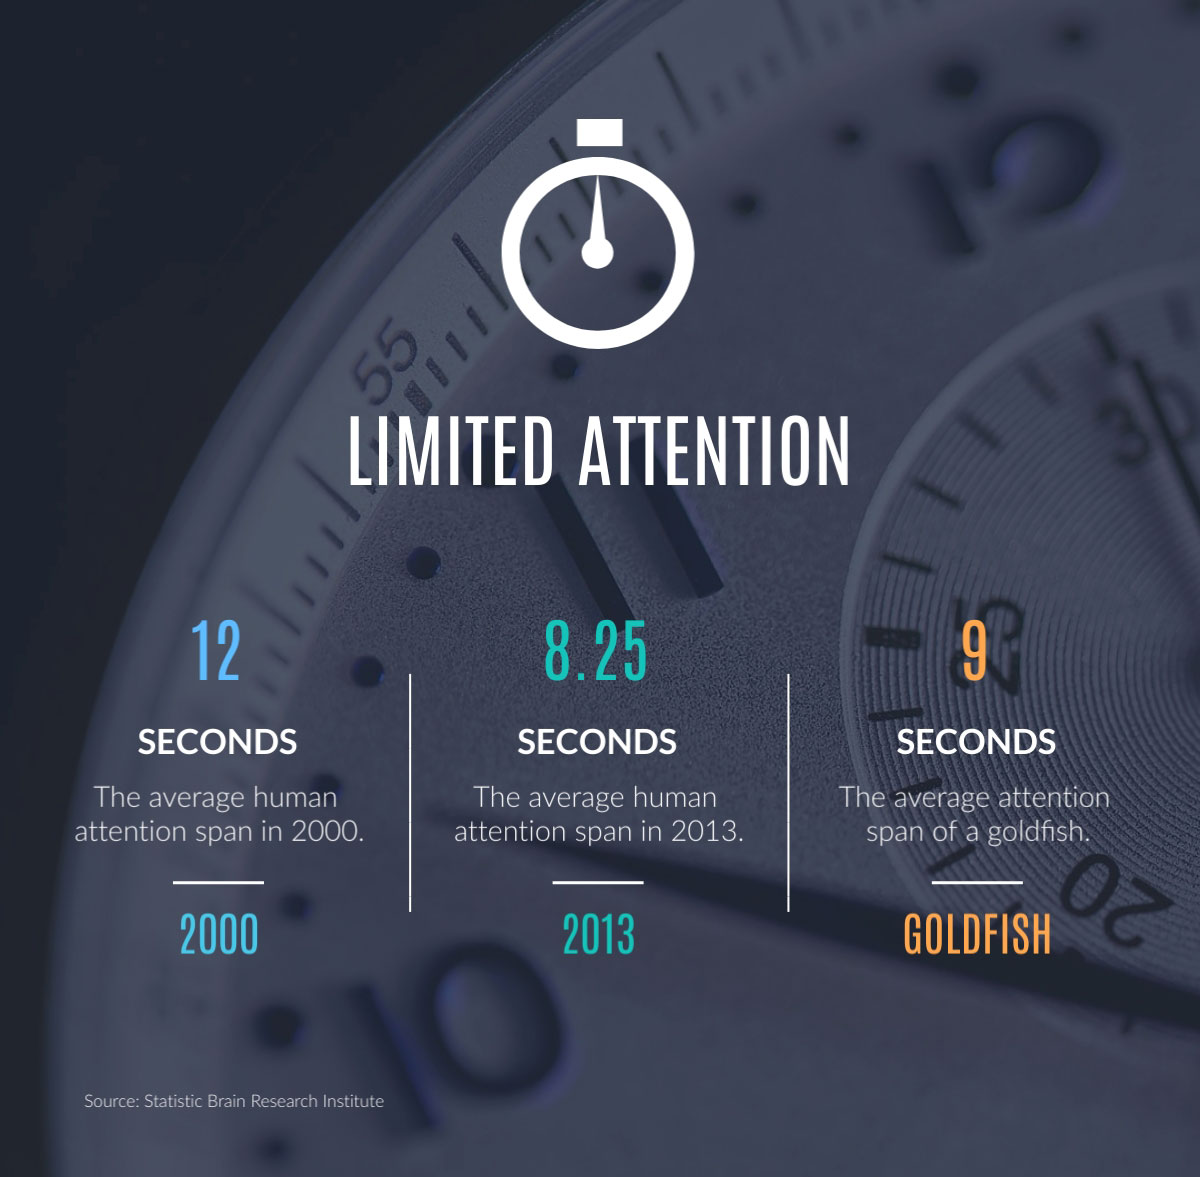 visual communication - limited attention infographic